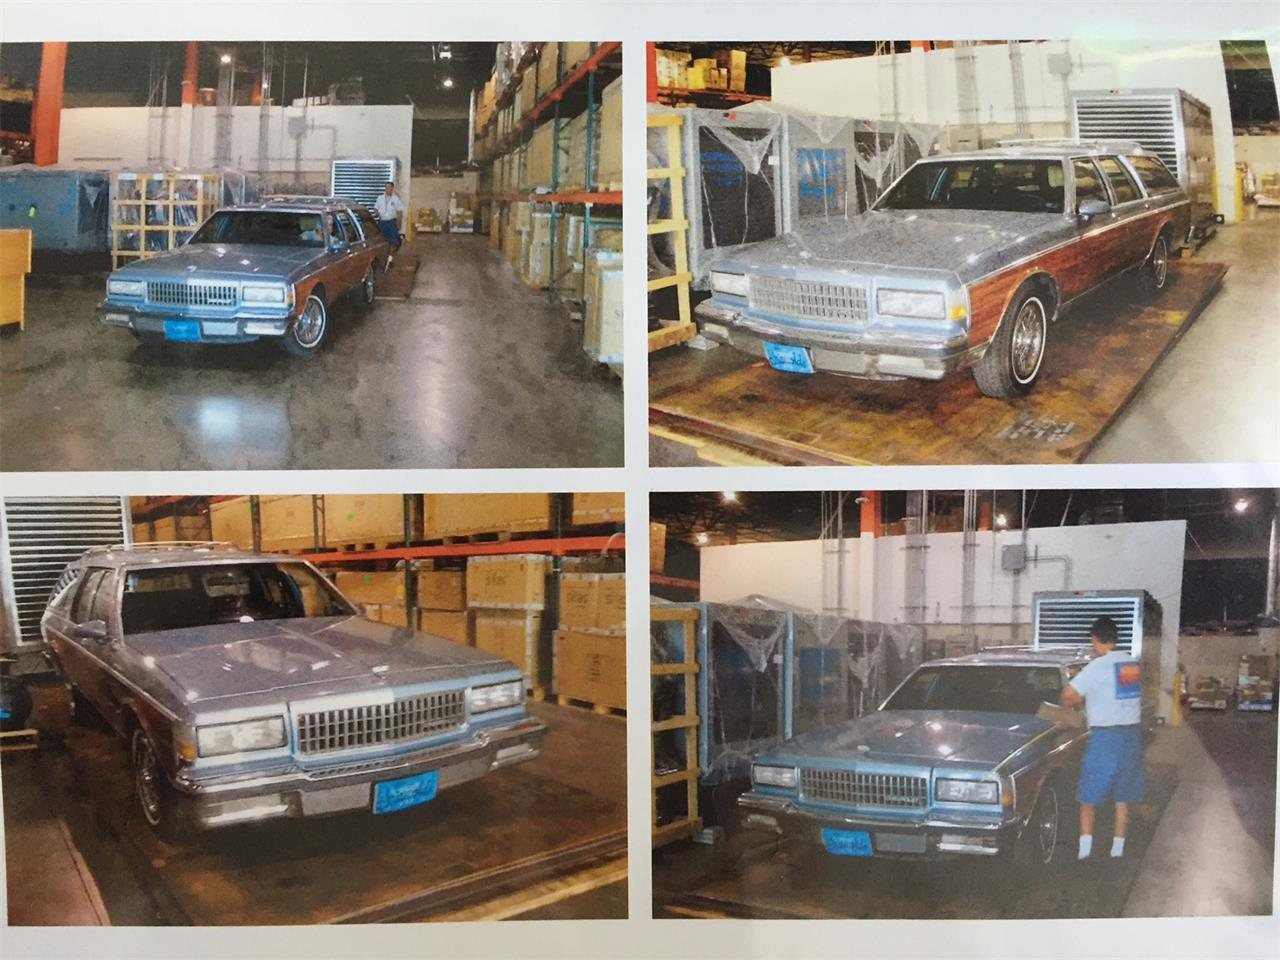 Large Picture of 1987 Chevrolet Caprice located in Italy Offered by a Private Seller - JH35